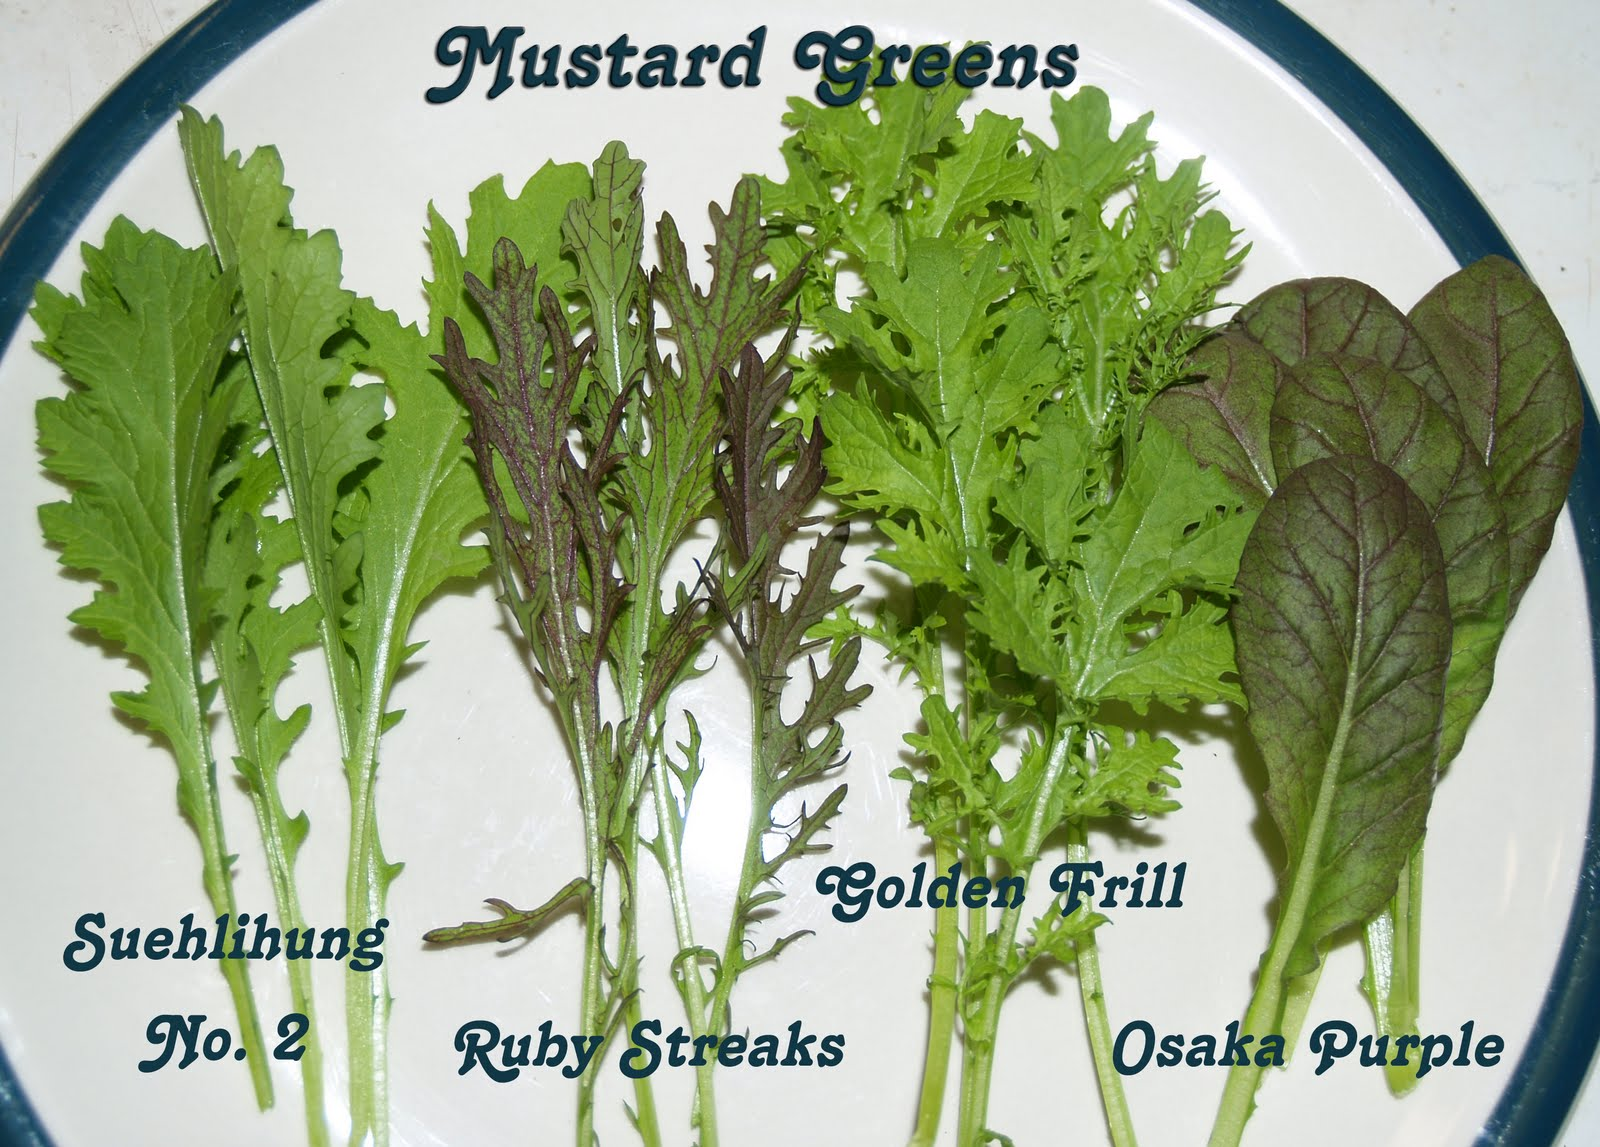 Are Mustard Greens Good For Dogs